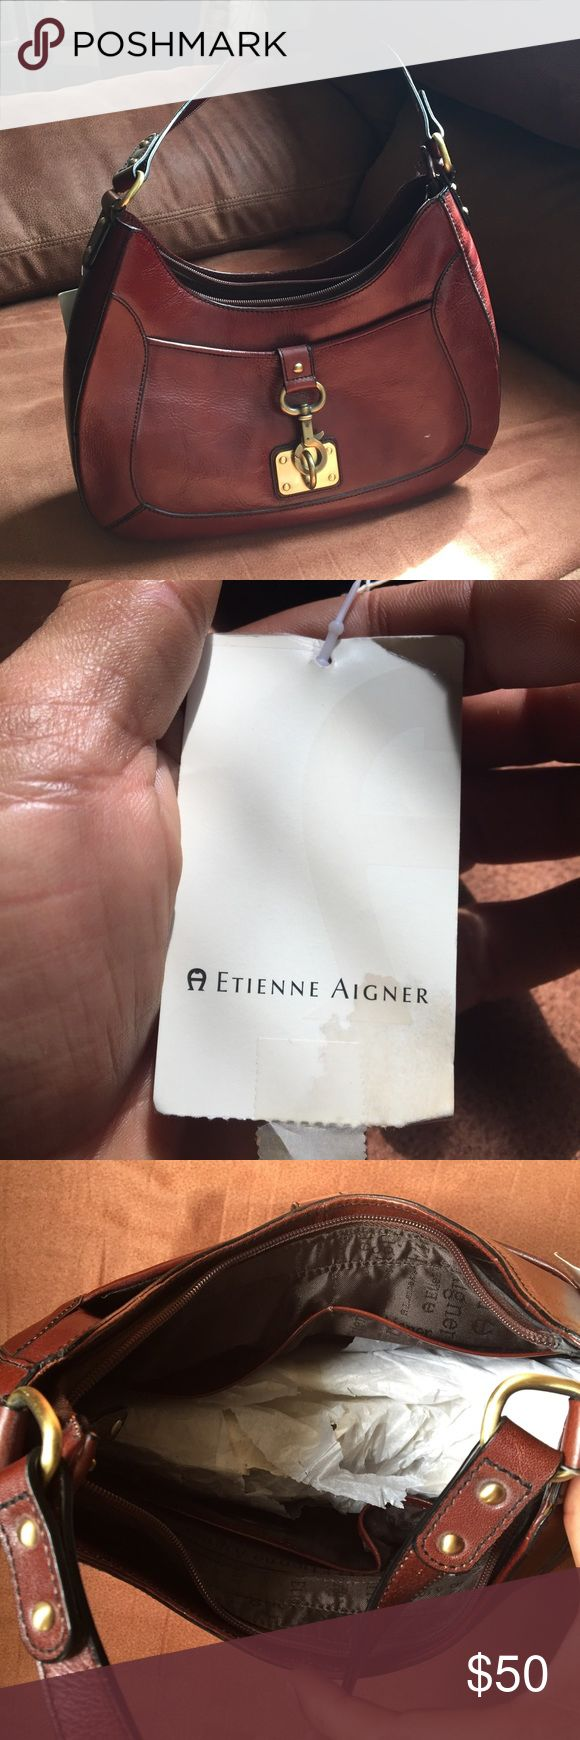 Etienne Aigner Handbag Brand new etienne aigner in perfect condition.100% real leather Etienne Aigner Bags Shoulder Bags